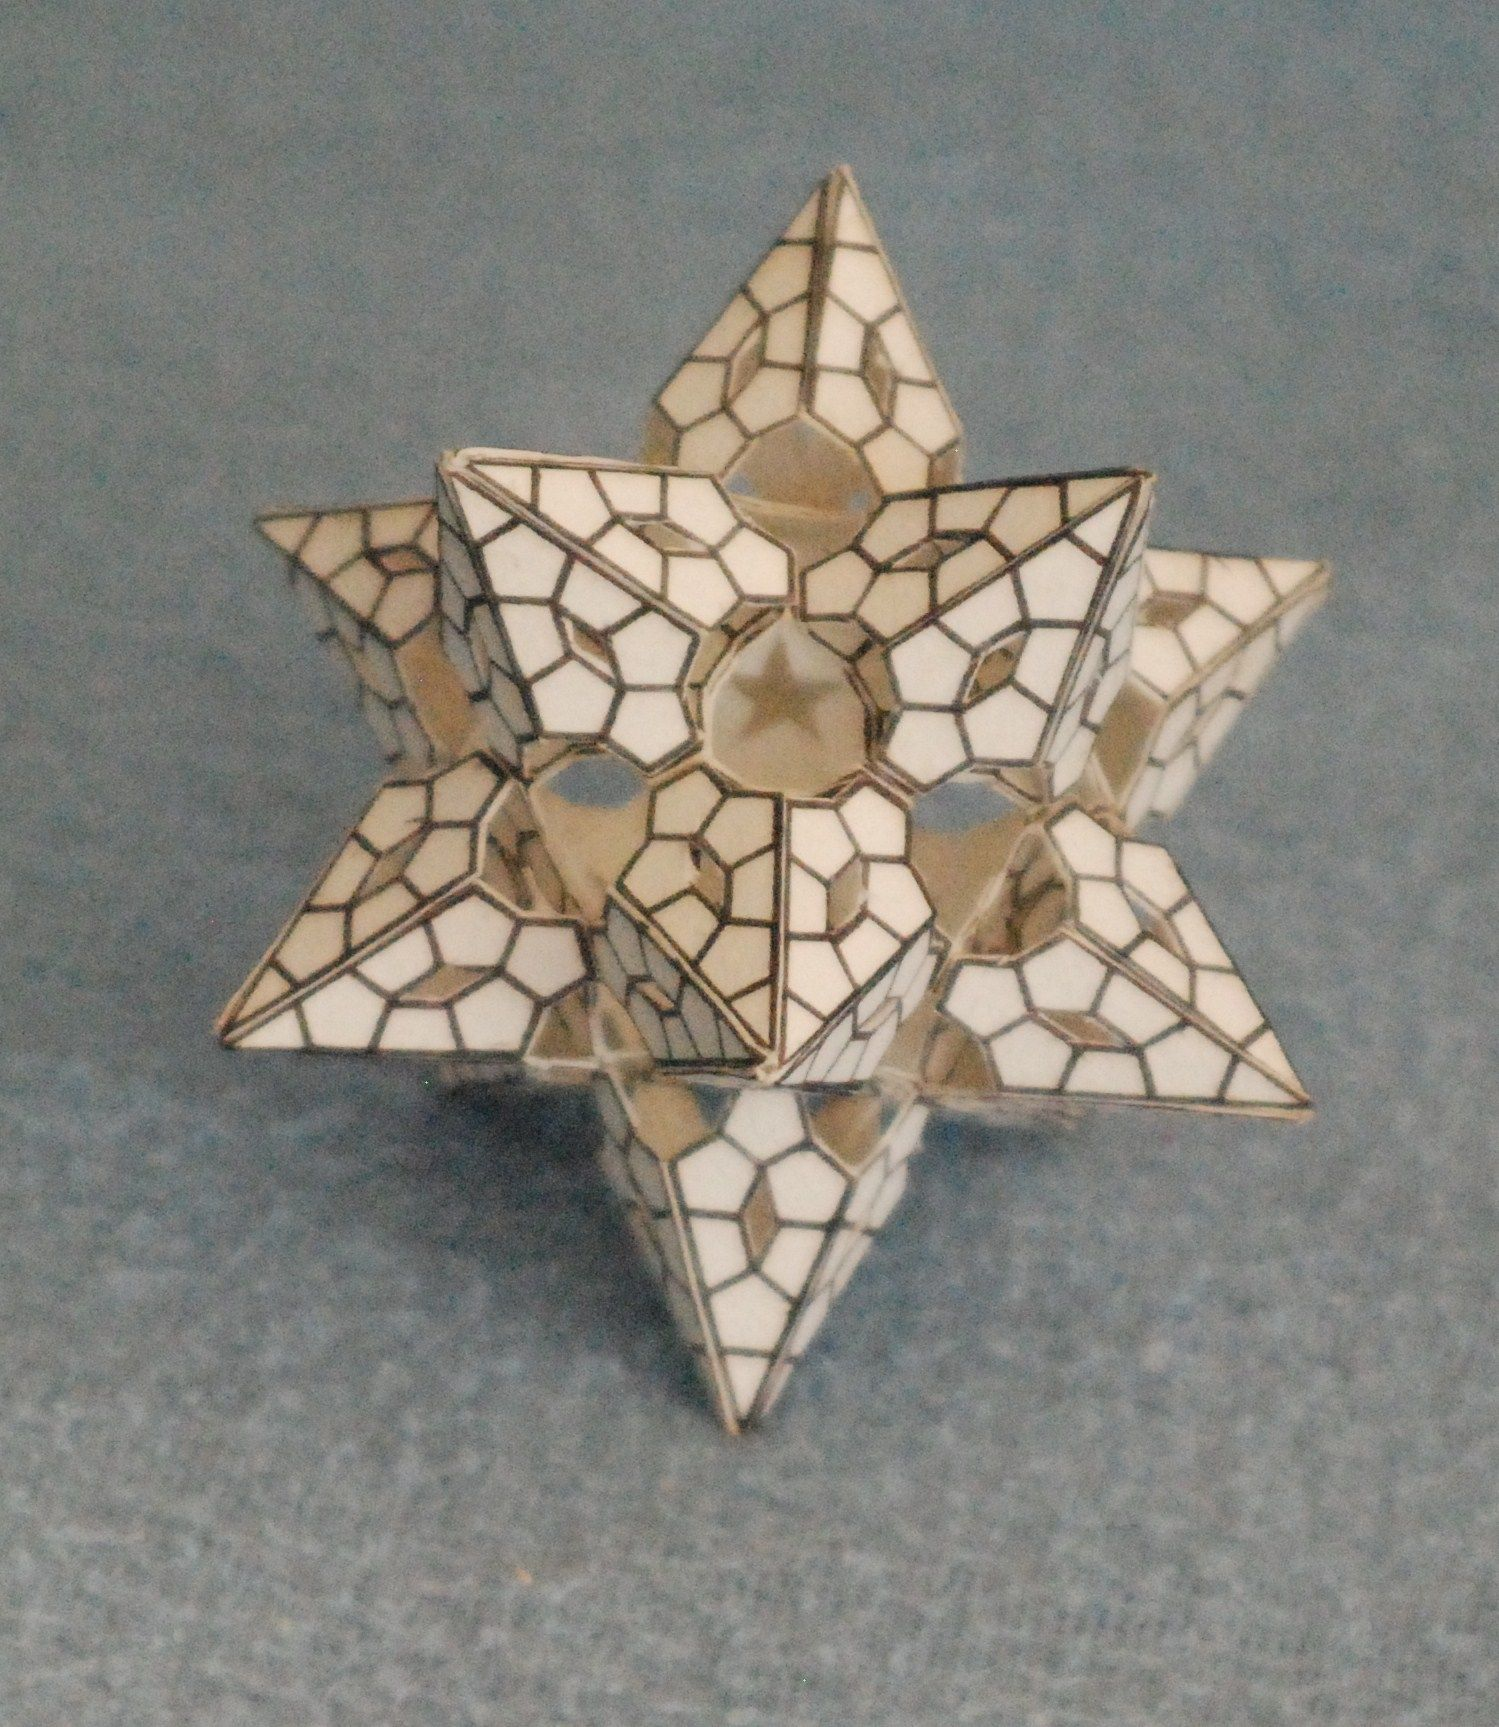 Stellated Star Dodecahedron